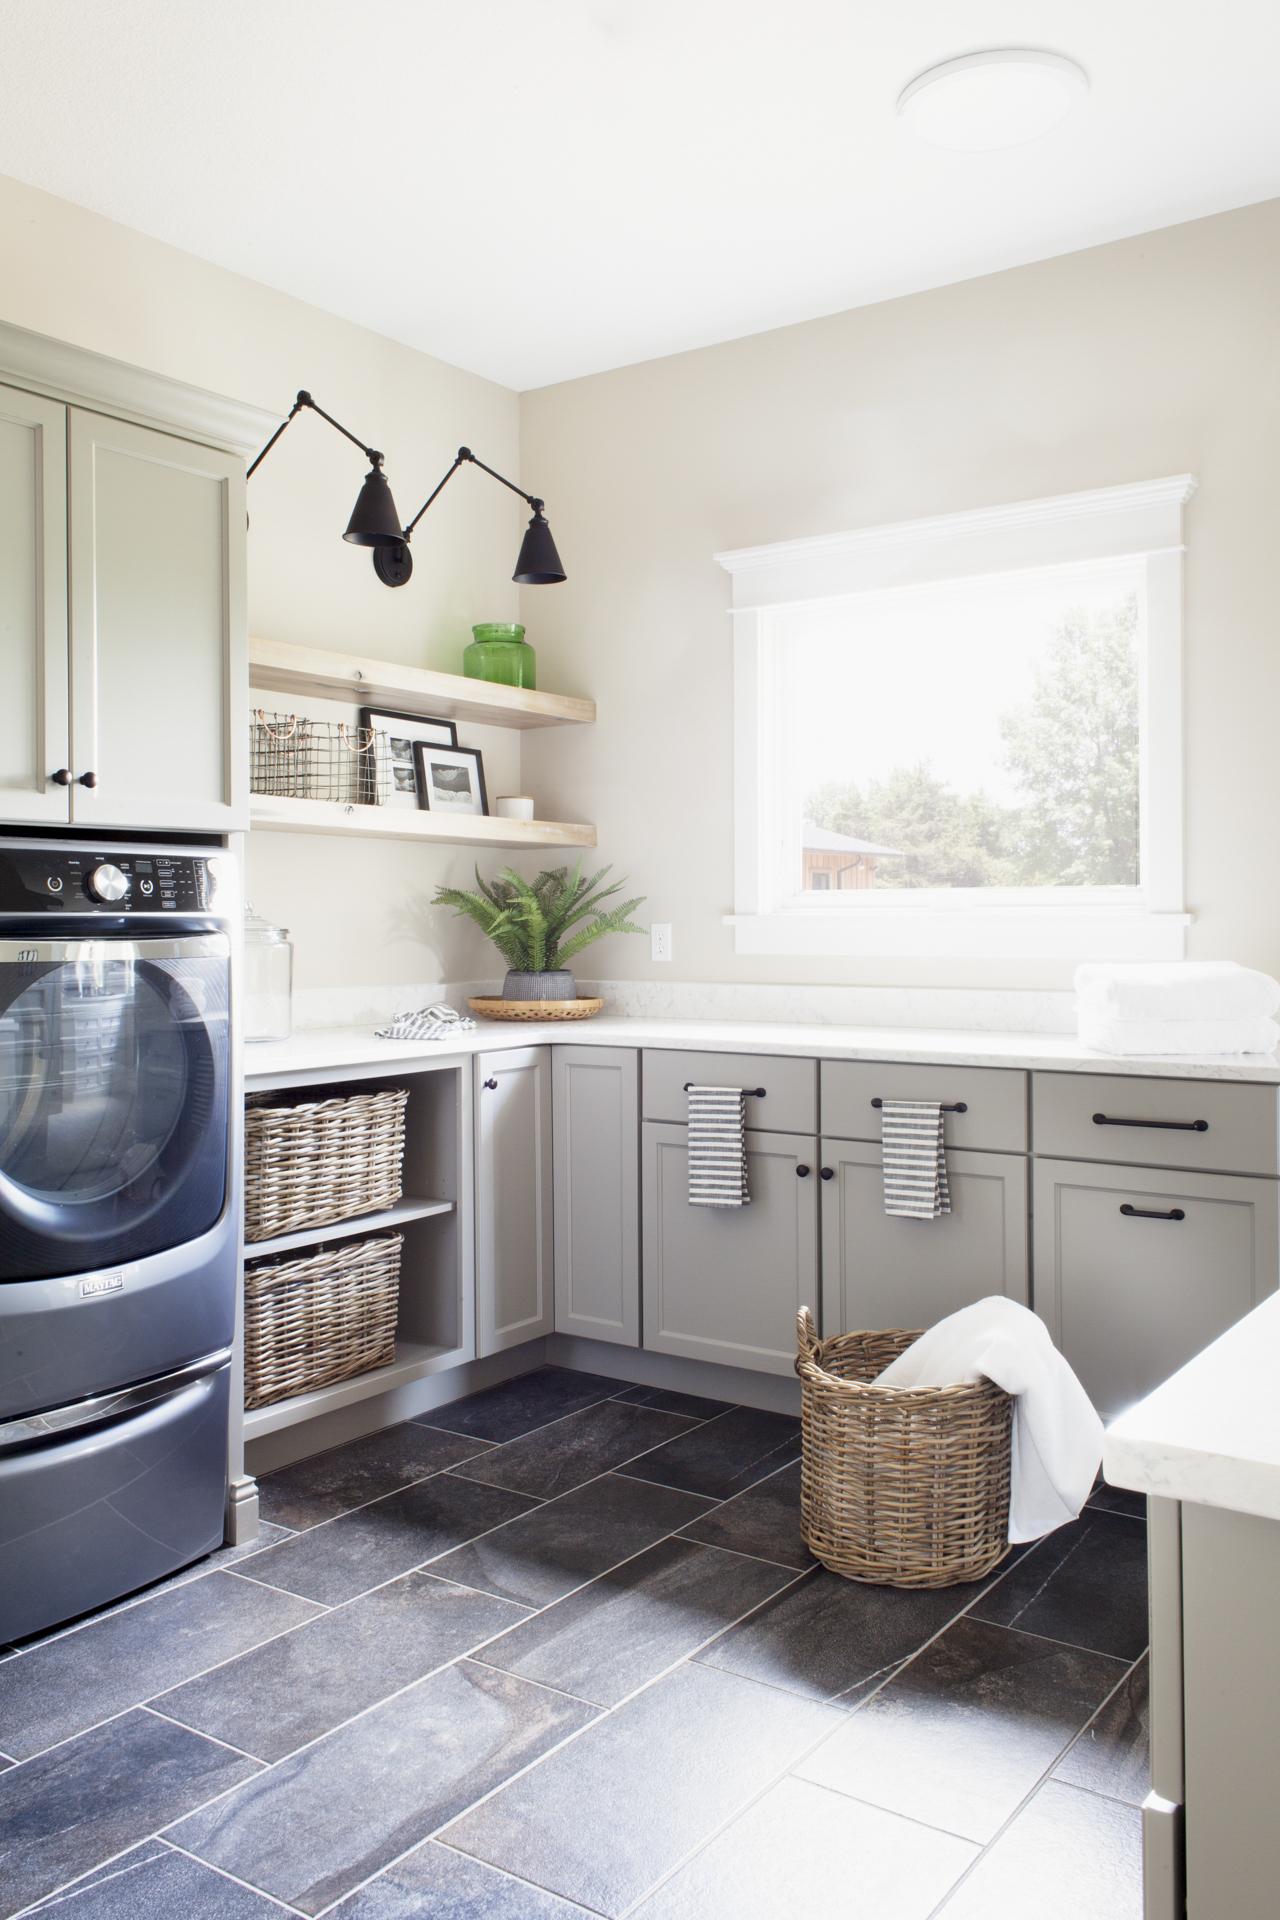 before-and-after-home-reveal-scout-and-nimble-lake-view-luxe-country-interior-design-laundry-room-luxury-black-sconce-23.jpg